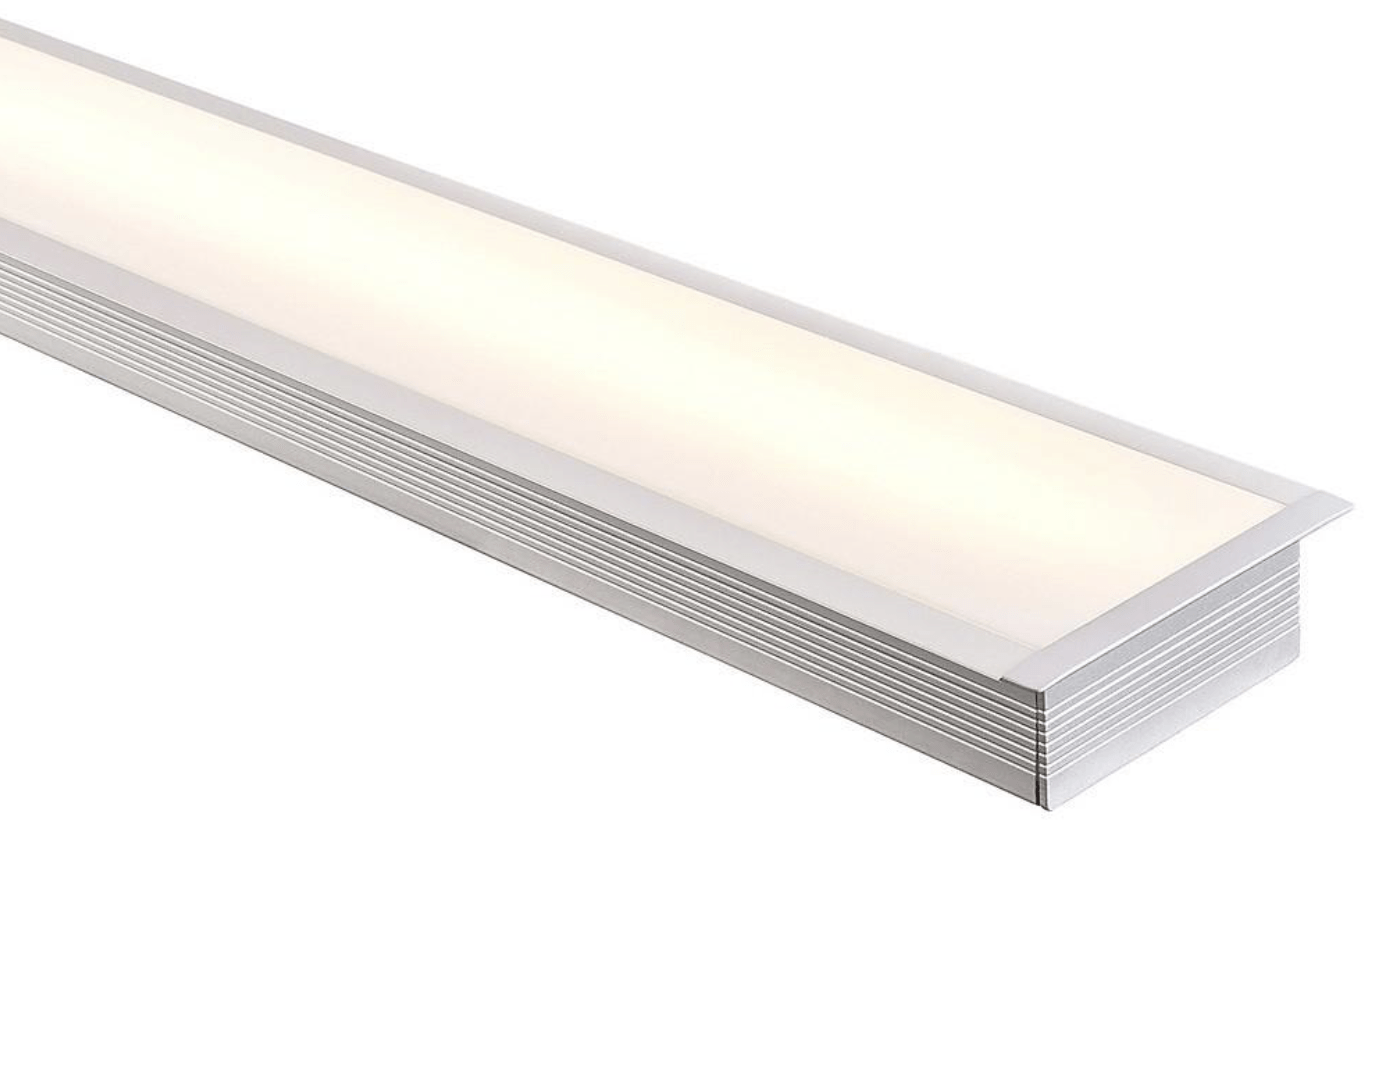 Profiles Recessed Profile - Large Deep Square Winged - HV9695-9835 lighting shops lighting stores LED lights  lighting designer